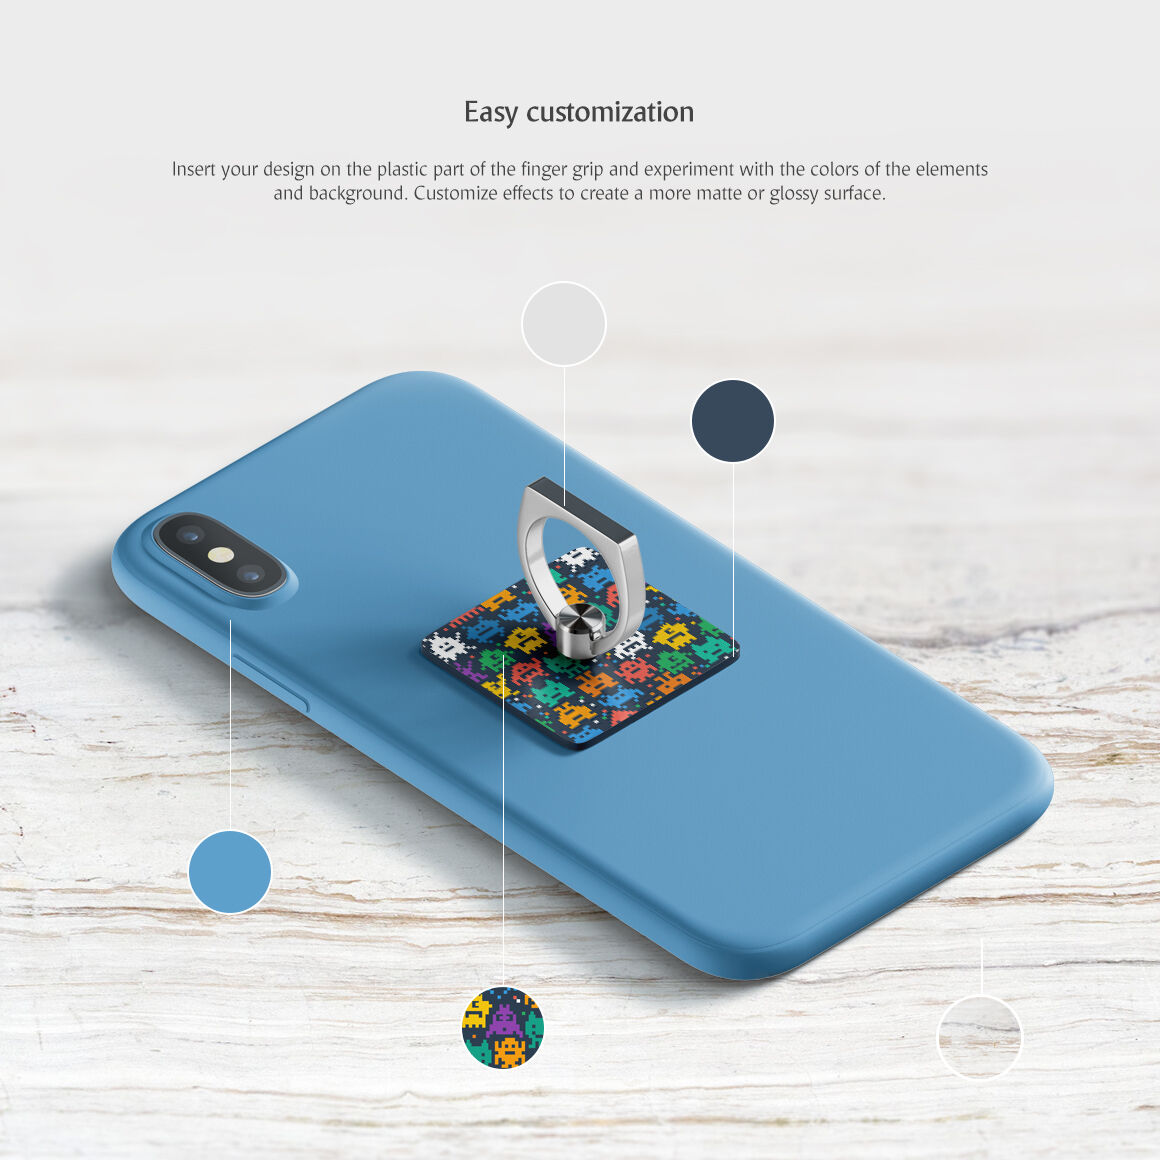 Download Iphone Psd Mockup Free Download Yellowimages